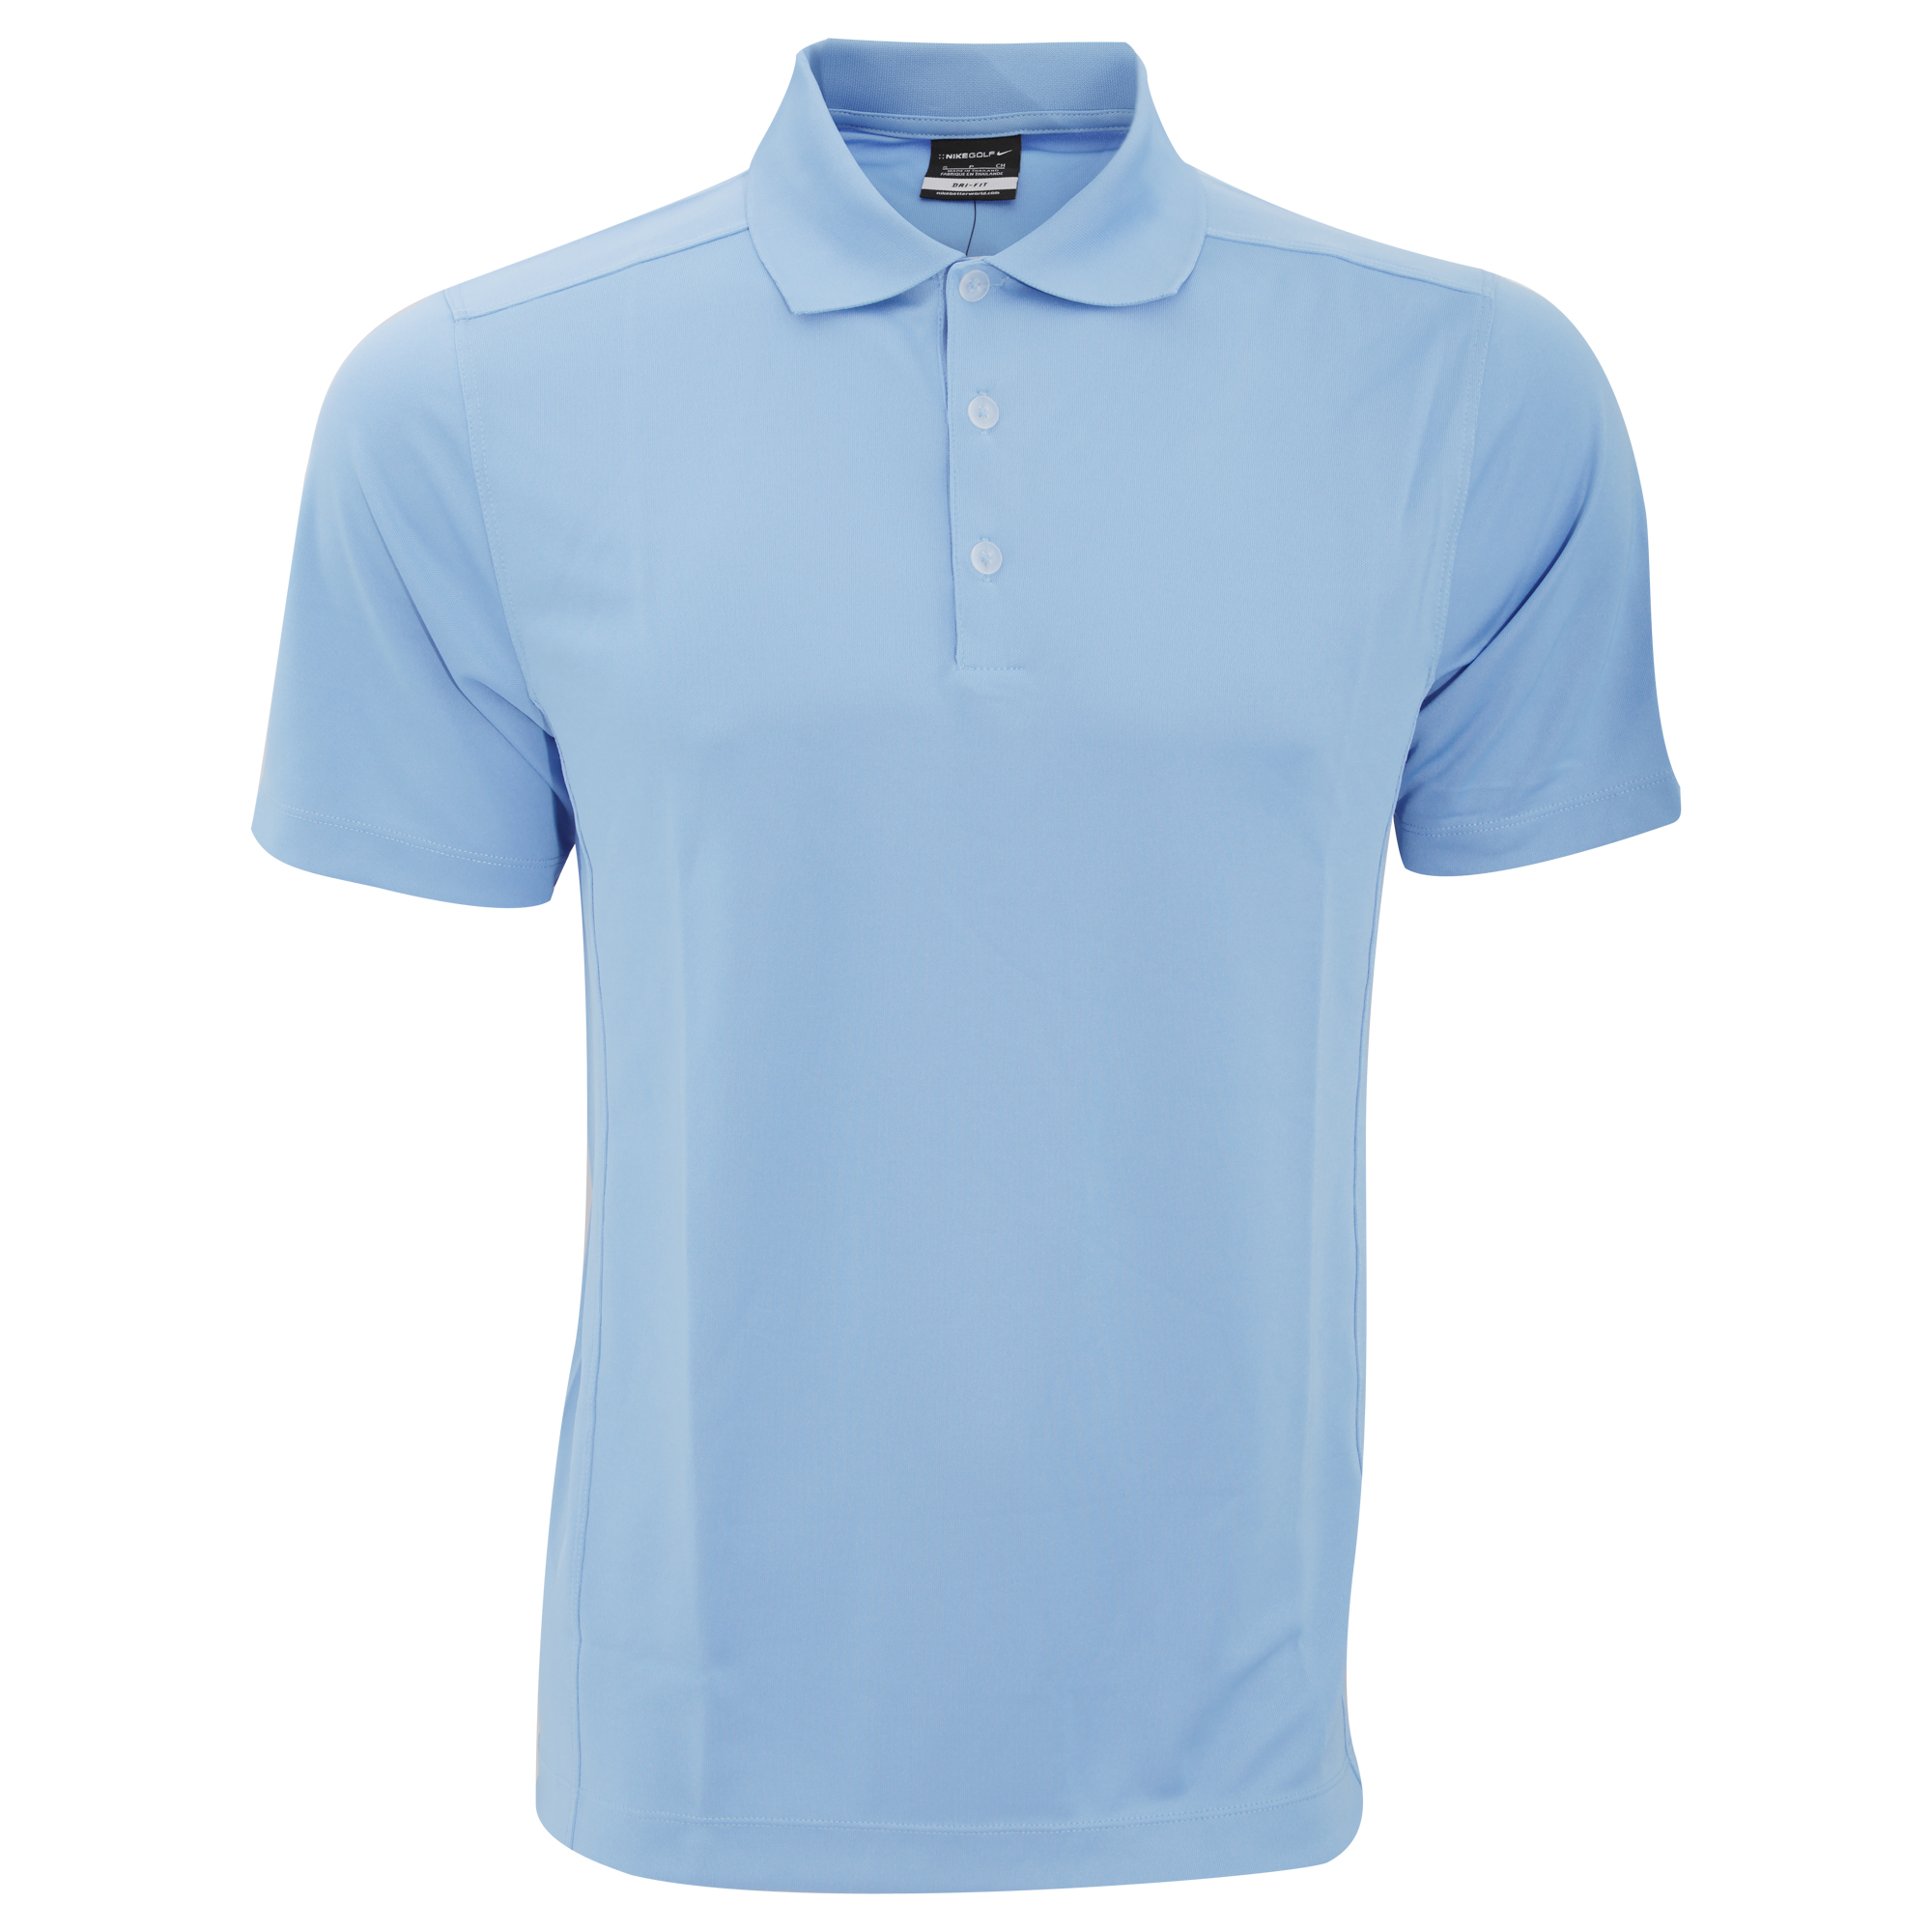 Nike mens dry fit sports golf polo shirt 6 colours s m l for Nike cotton golf shirts